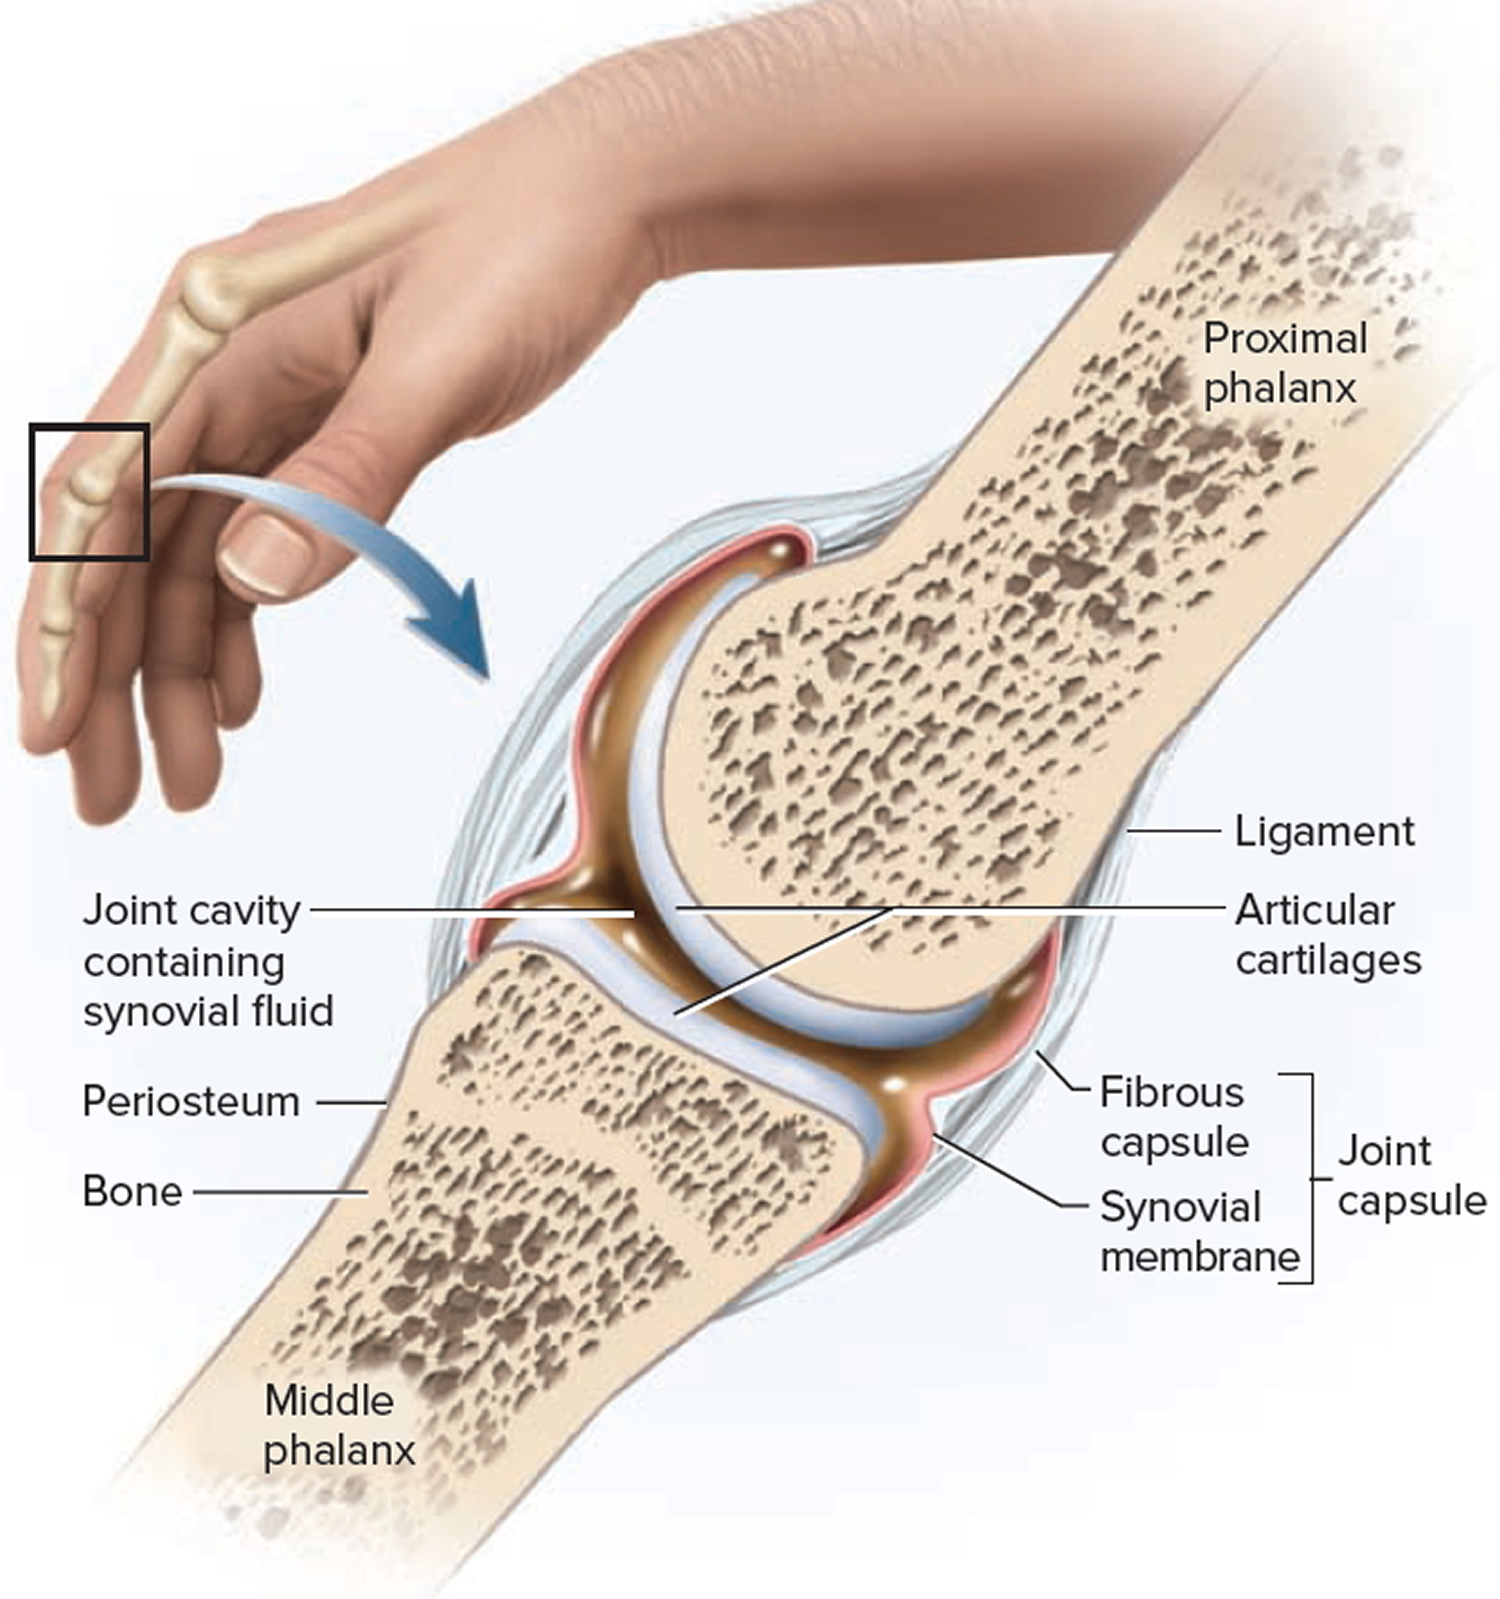 Designs associated with synovial joints: